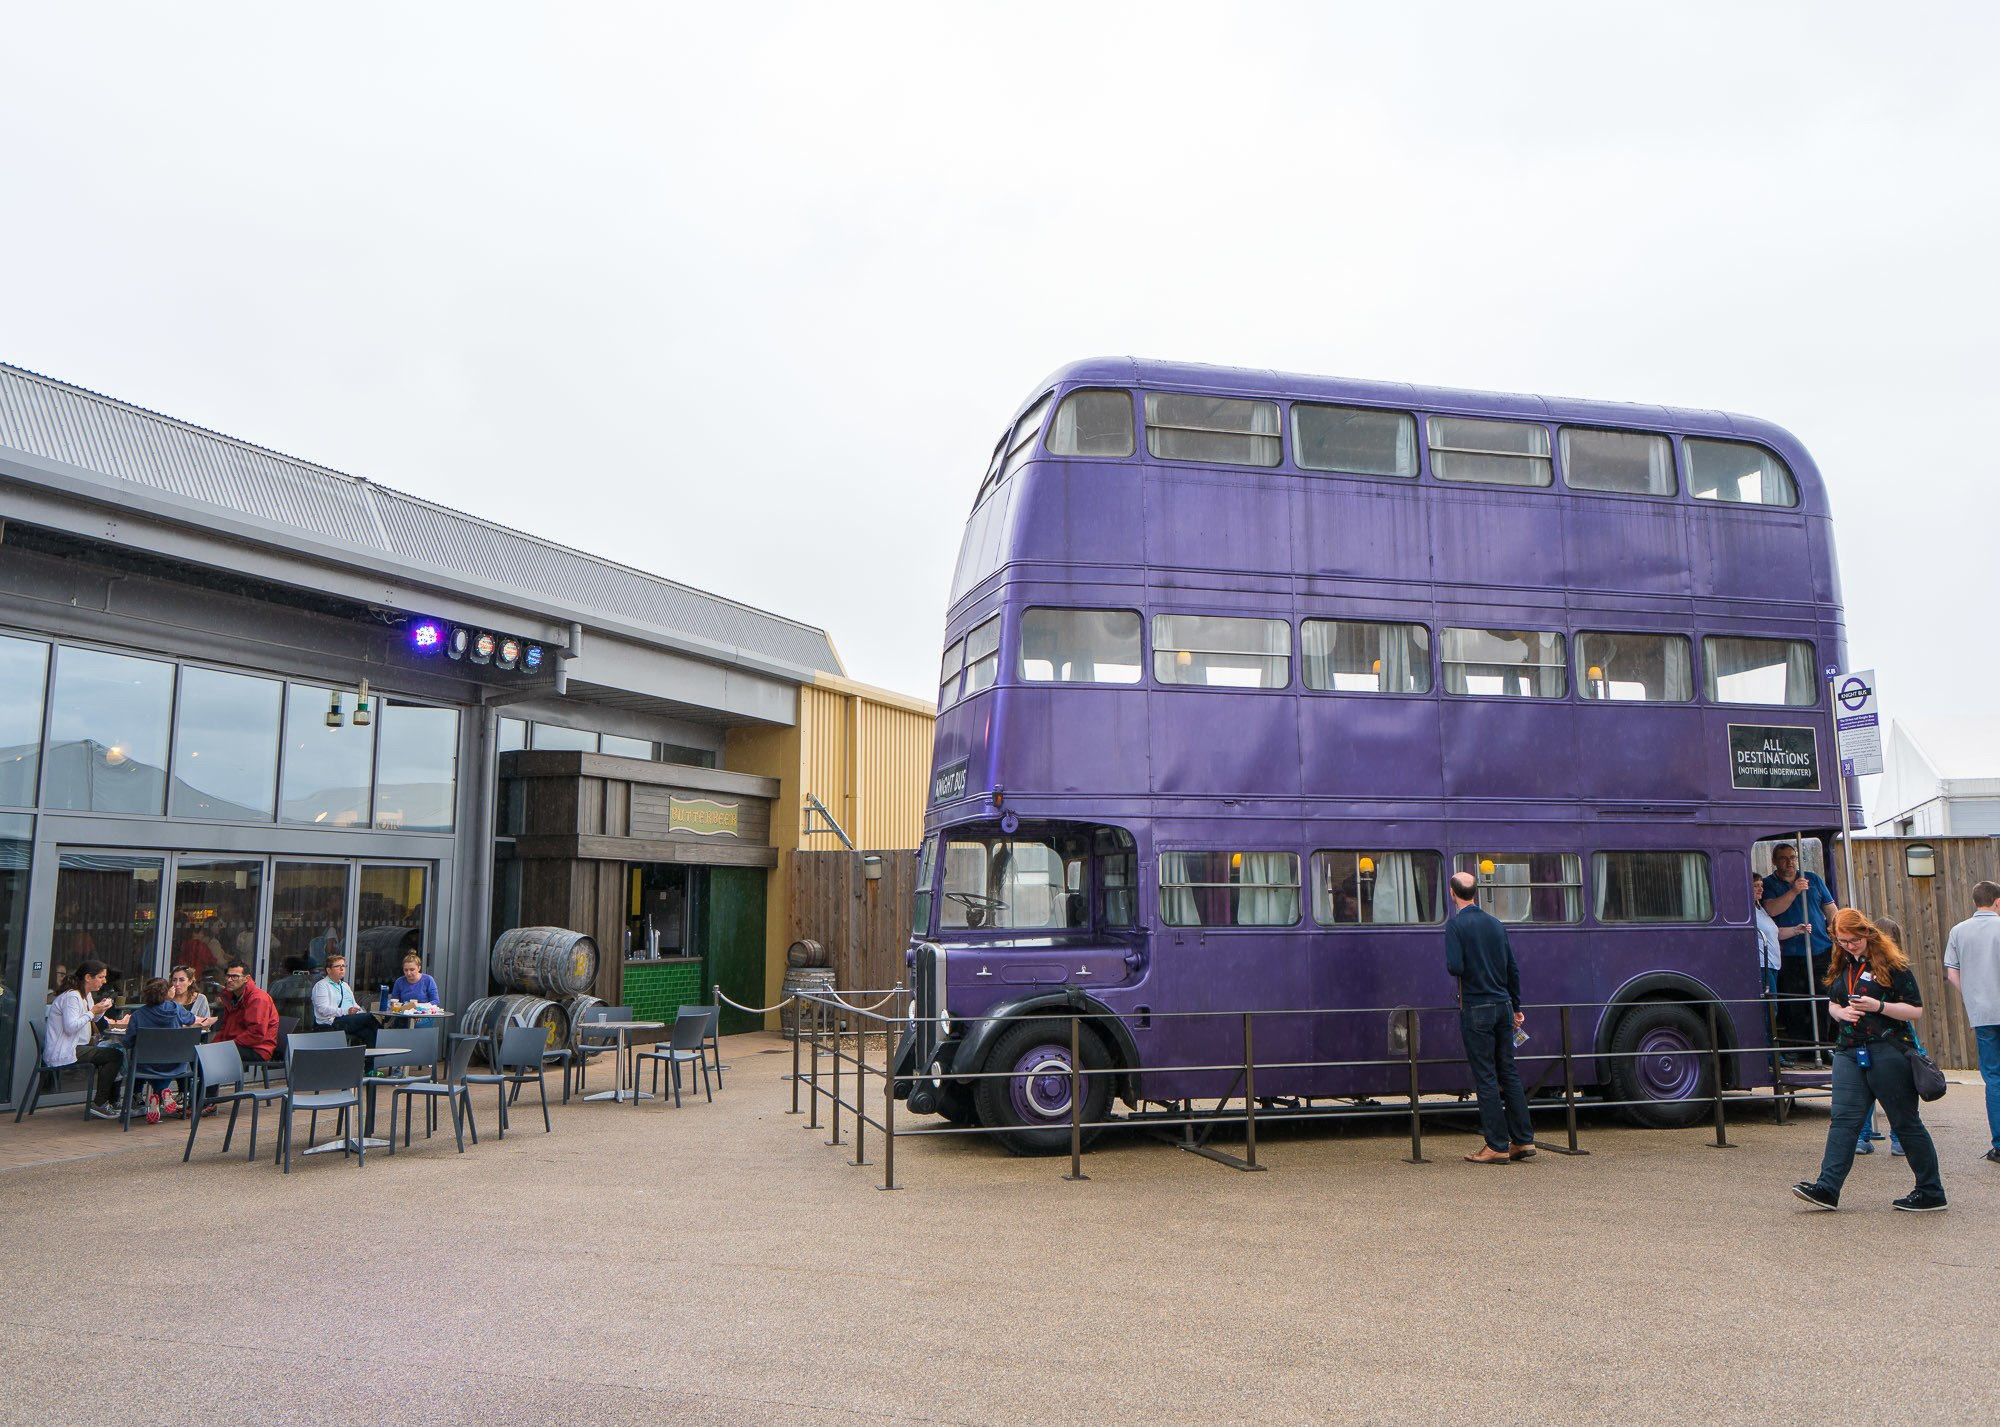 The Night Bus from the Harry Potter movies at the Warner Bros. Studio Tour London.